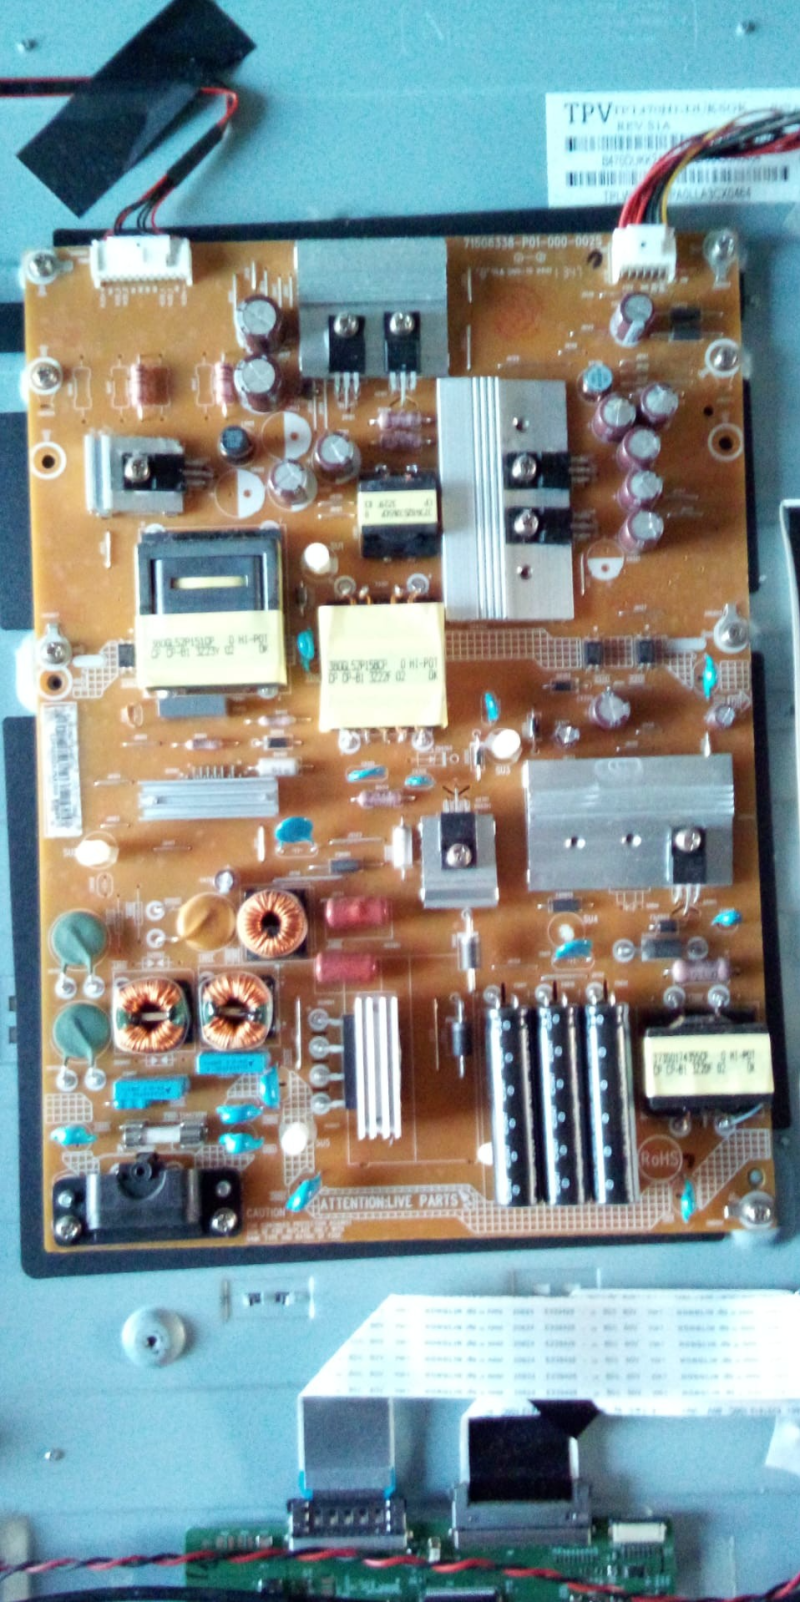 Powerboard Philips 47PFK7109/12 715G6338-P01-000-002S